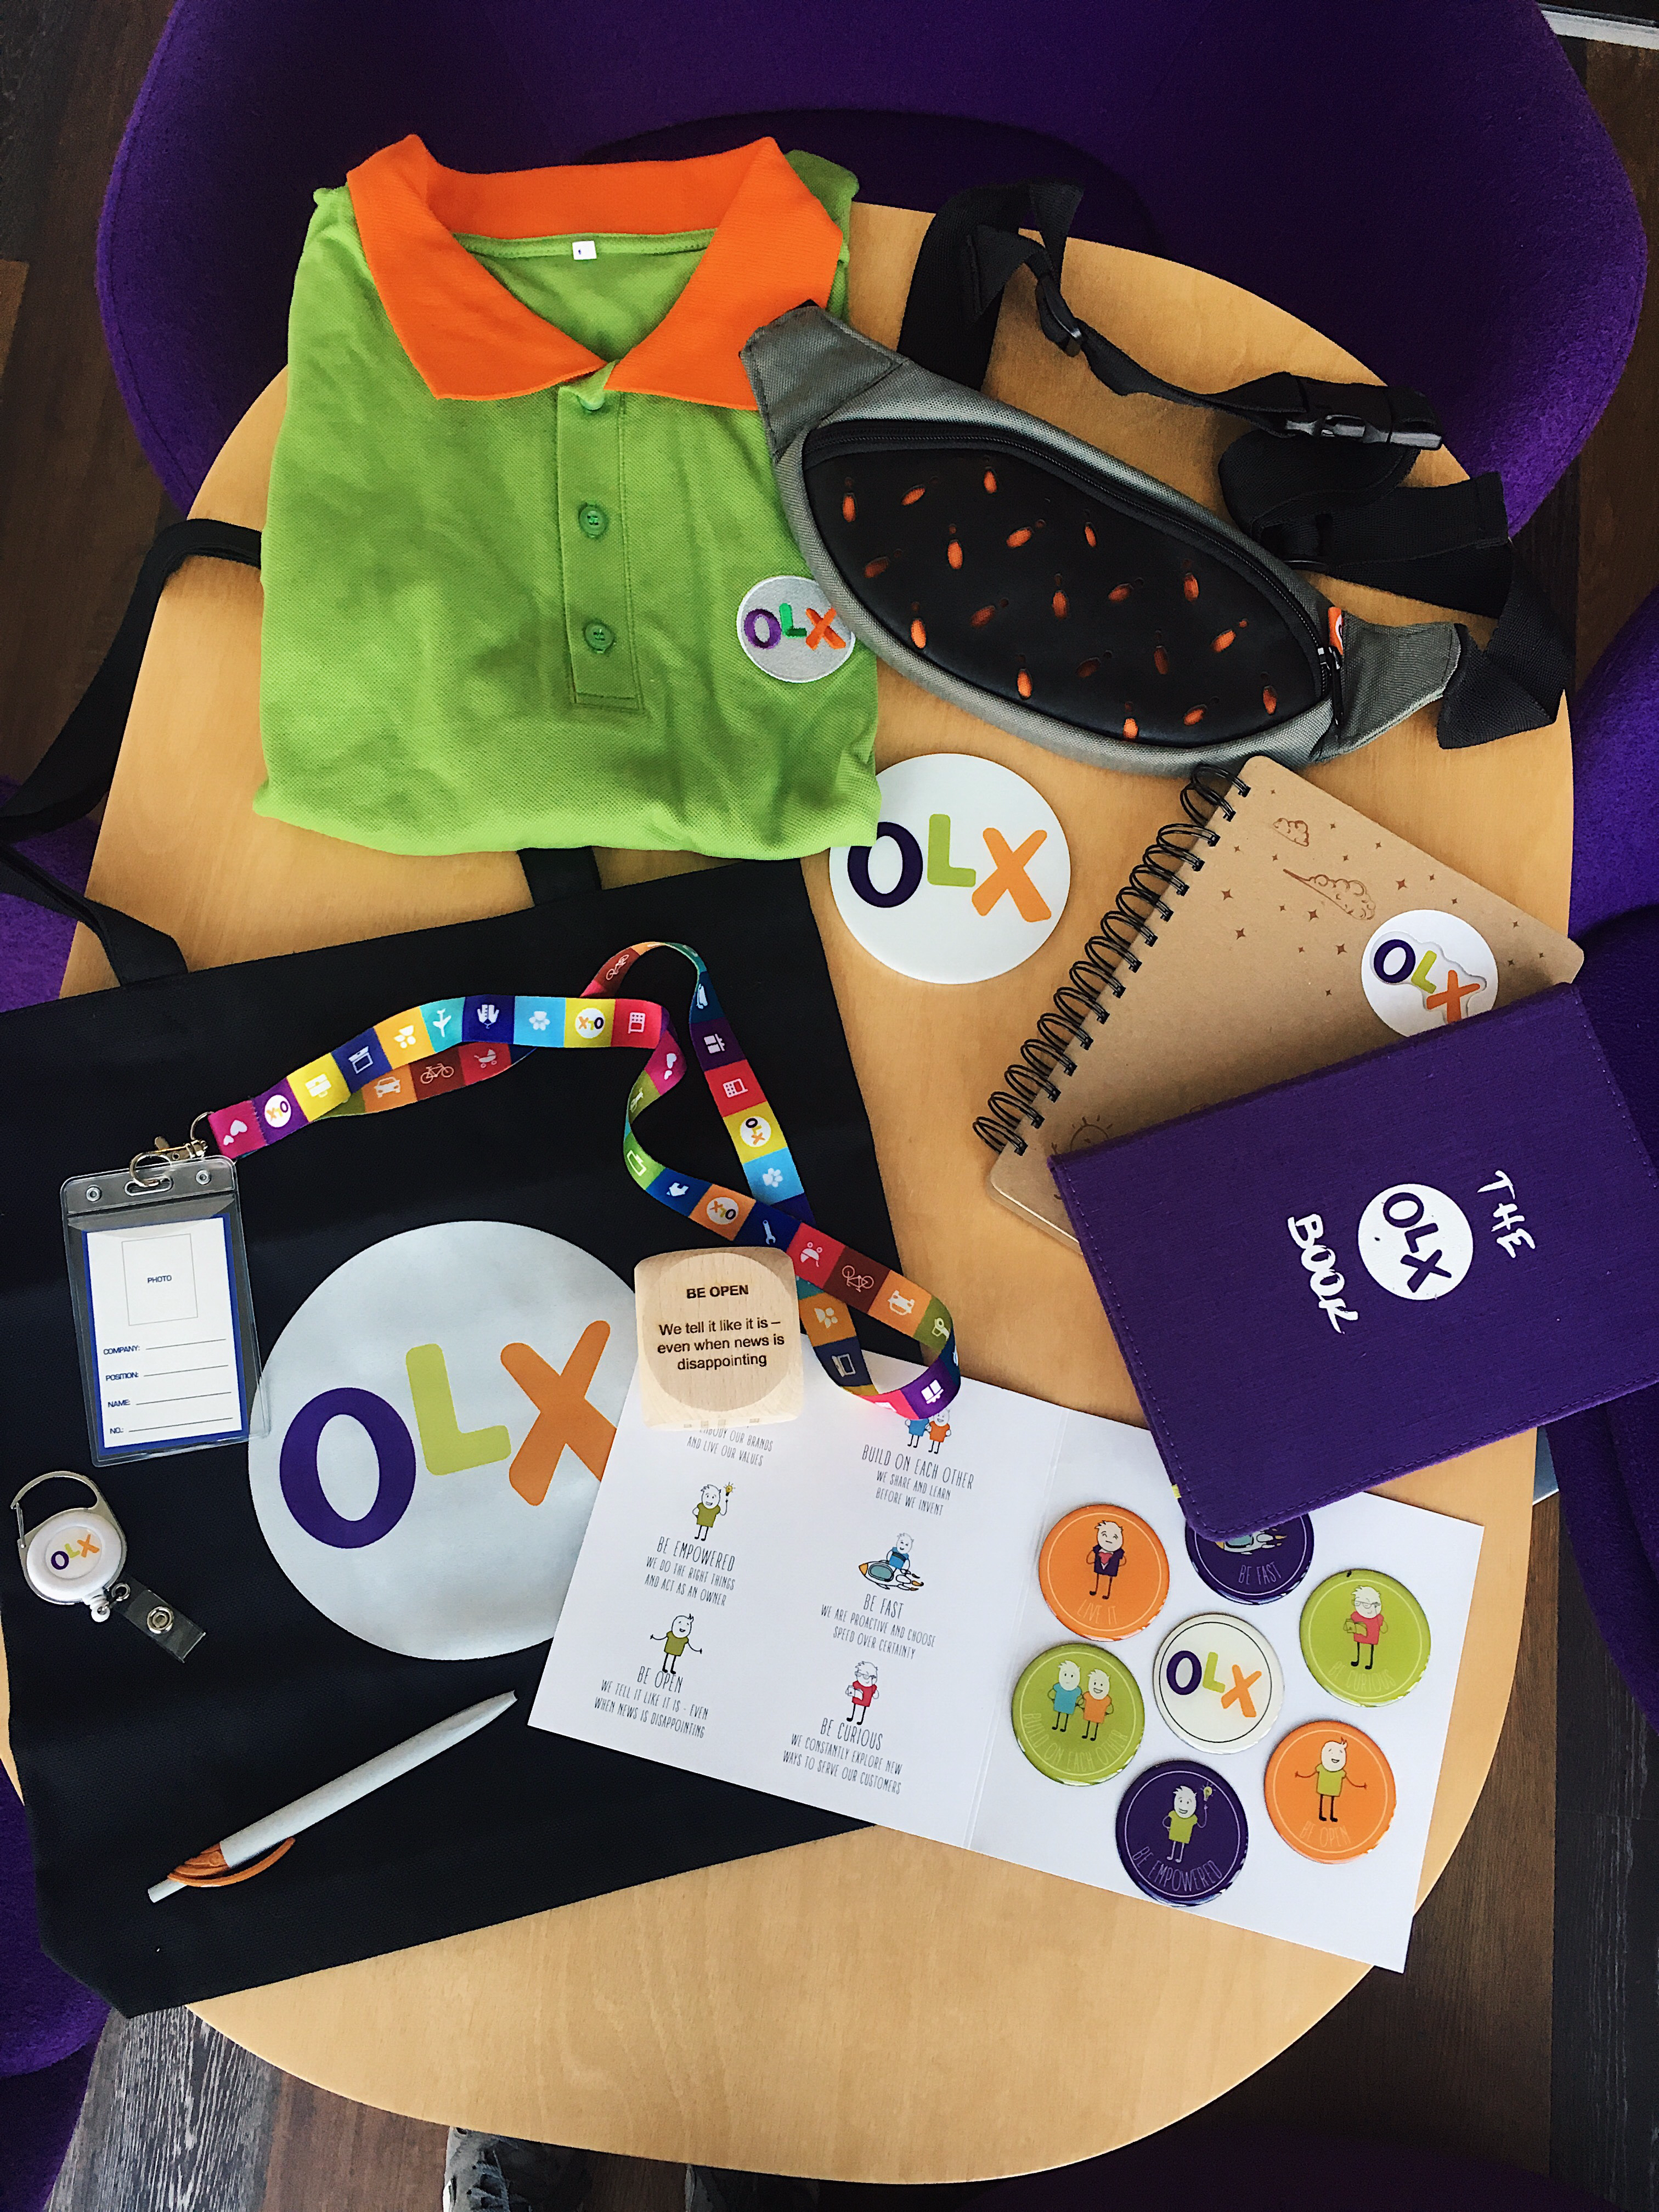 olx welcome box